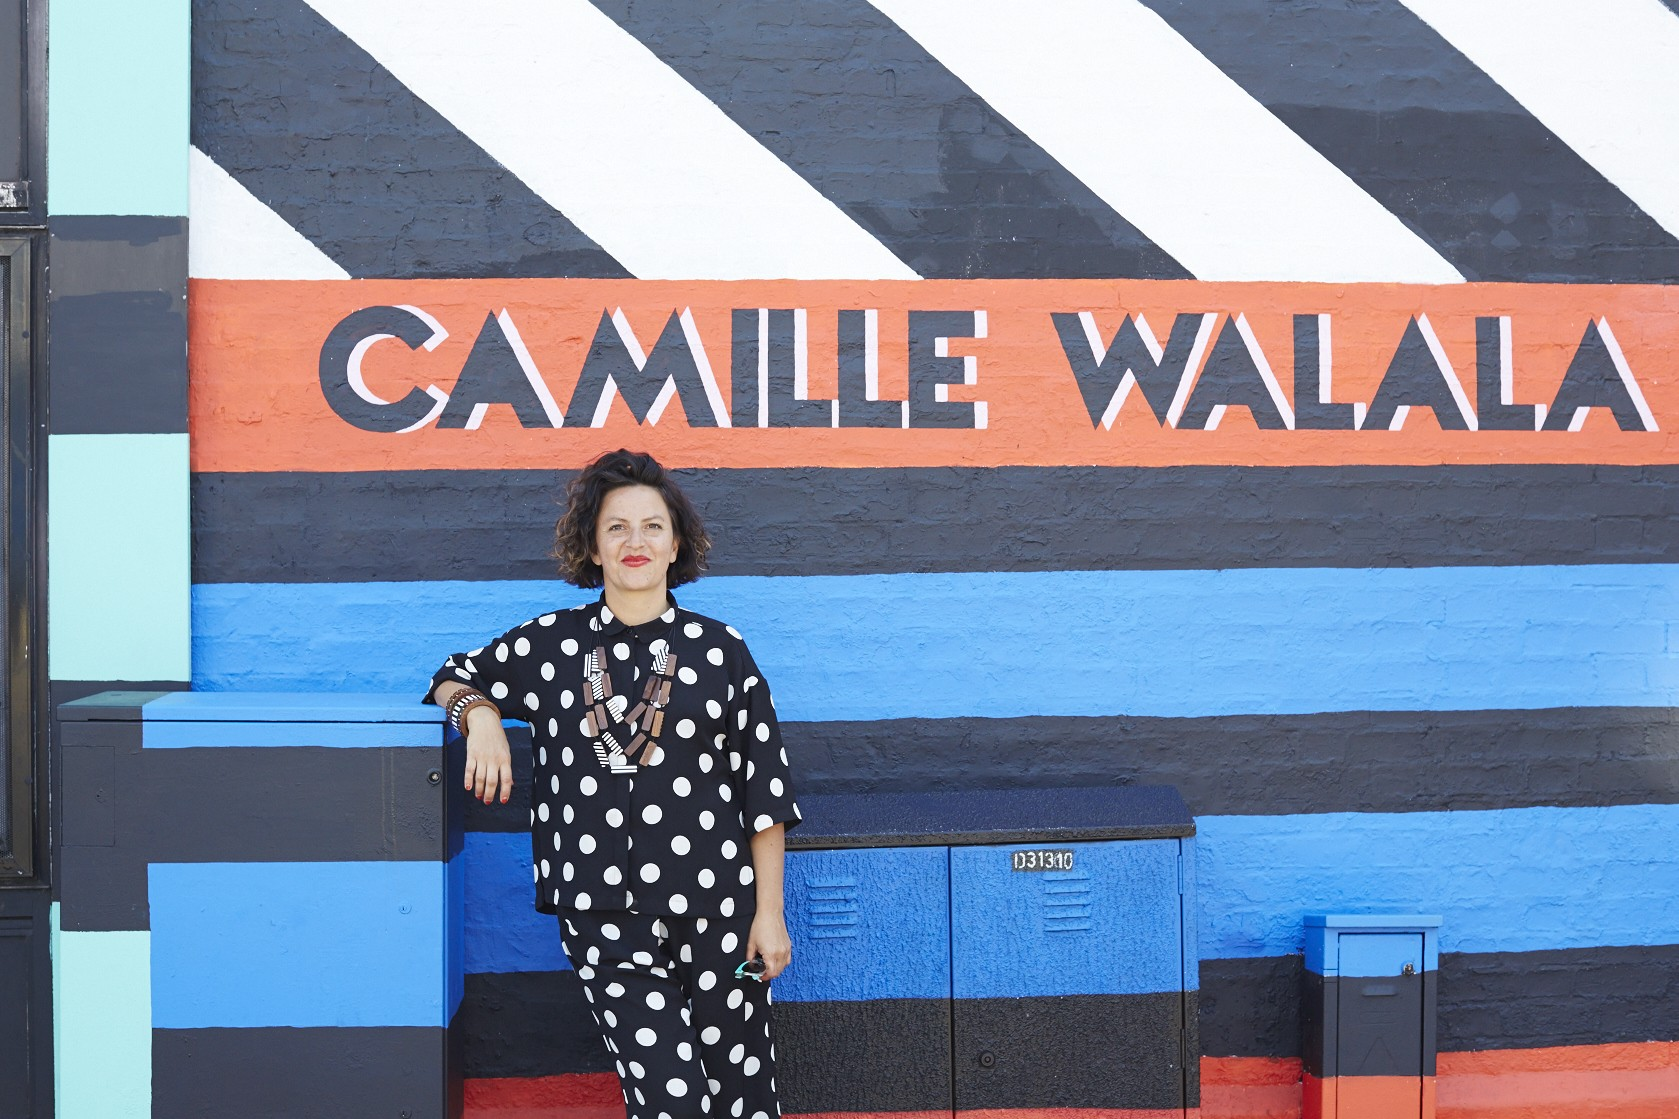 Camille Walala, whose studio is in Hackney, has designed murals in Whitby Street and at Queensbridge Primary School